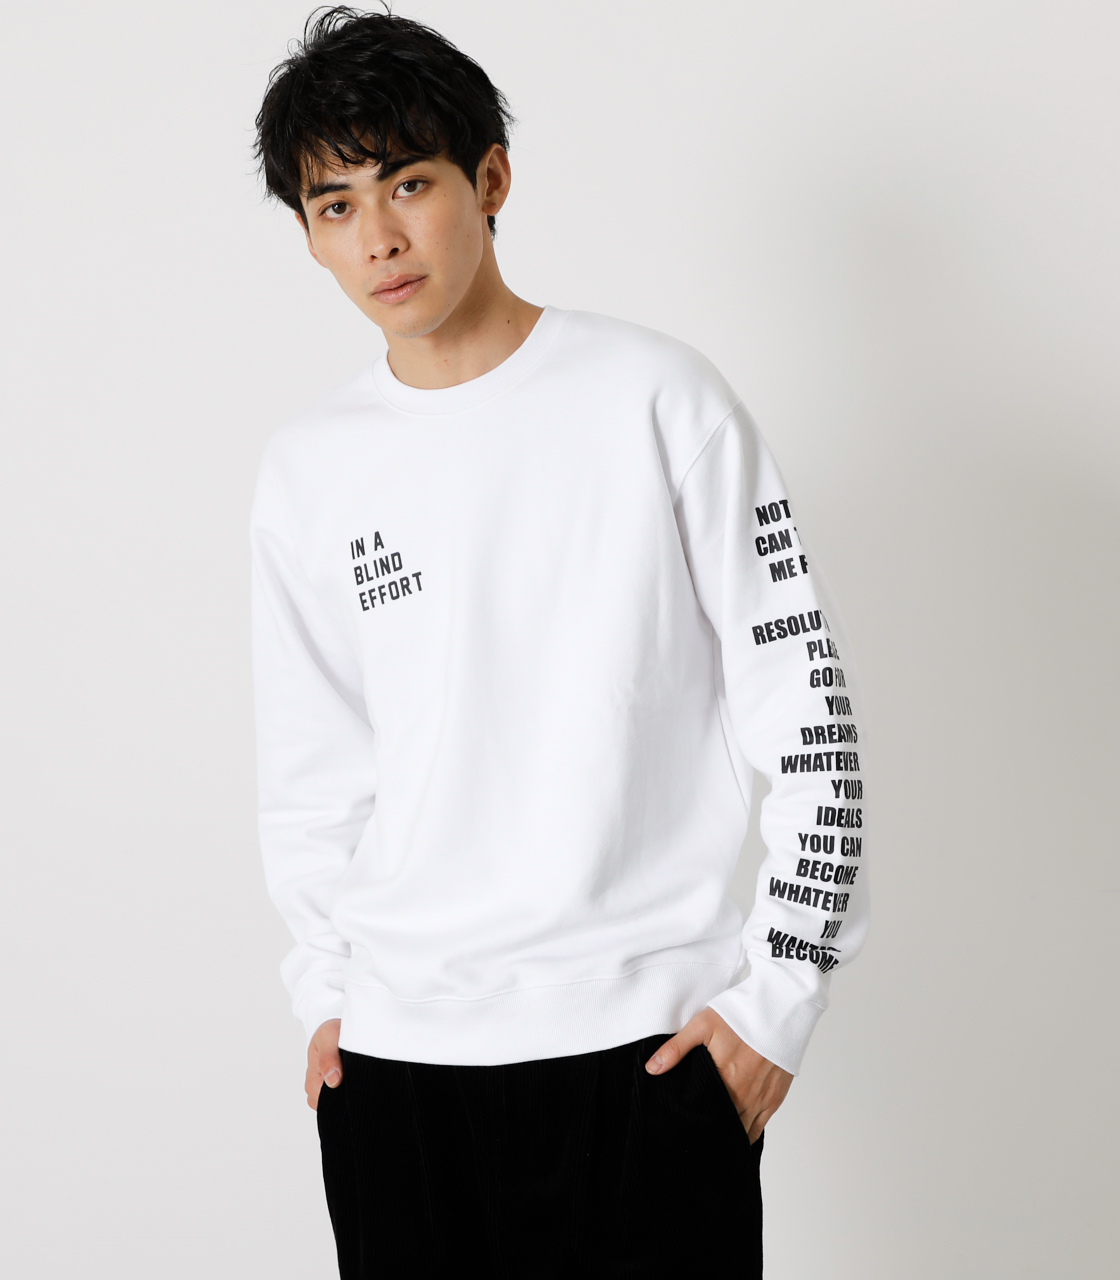 ONE ARM MESSAGE PULLOVER/ワンアームメッセージプルオーバー 詳細画像 WHT 1